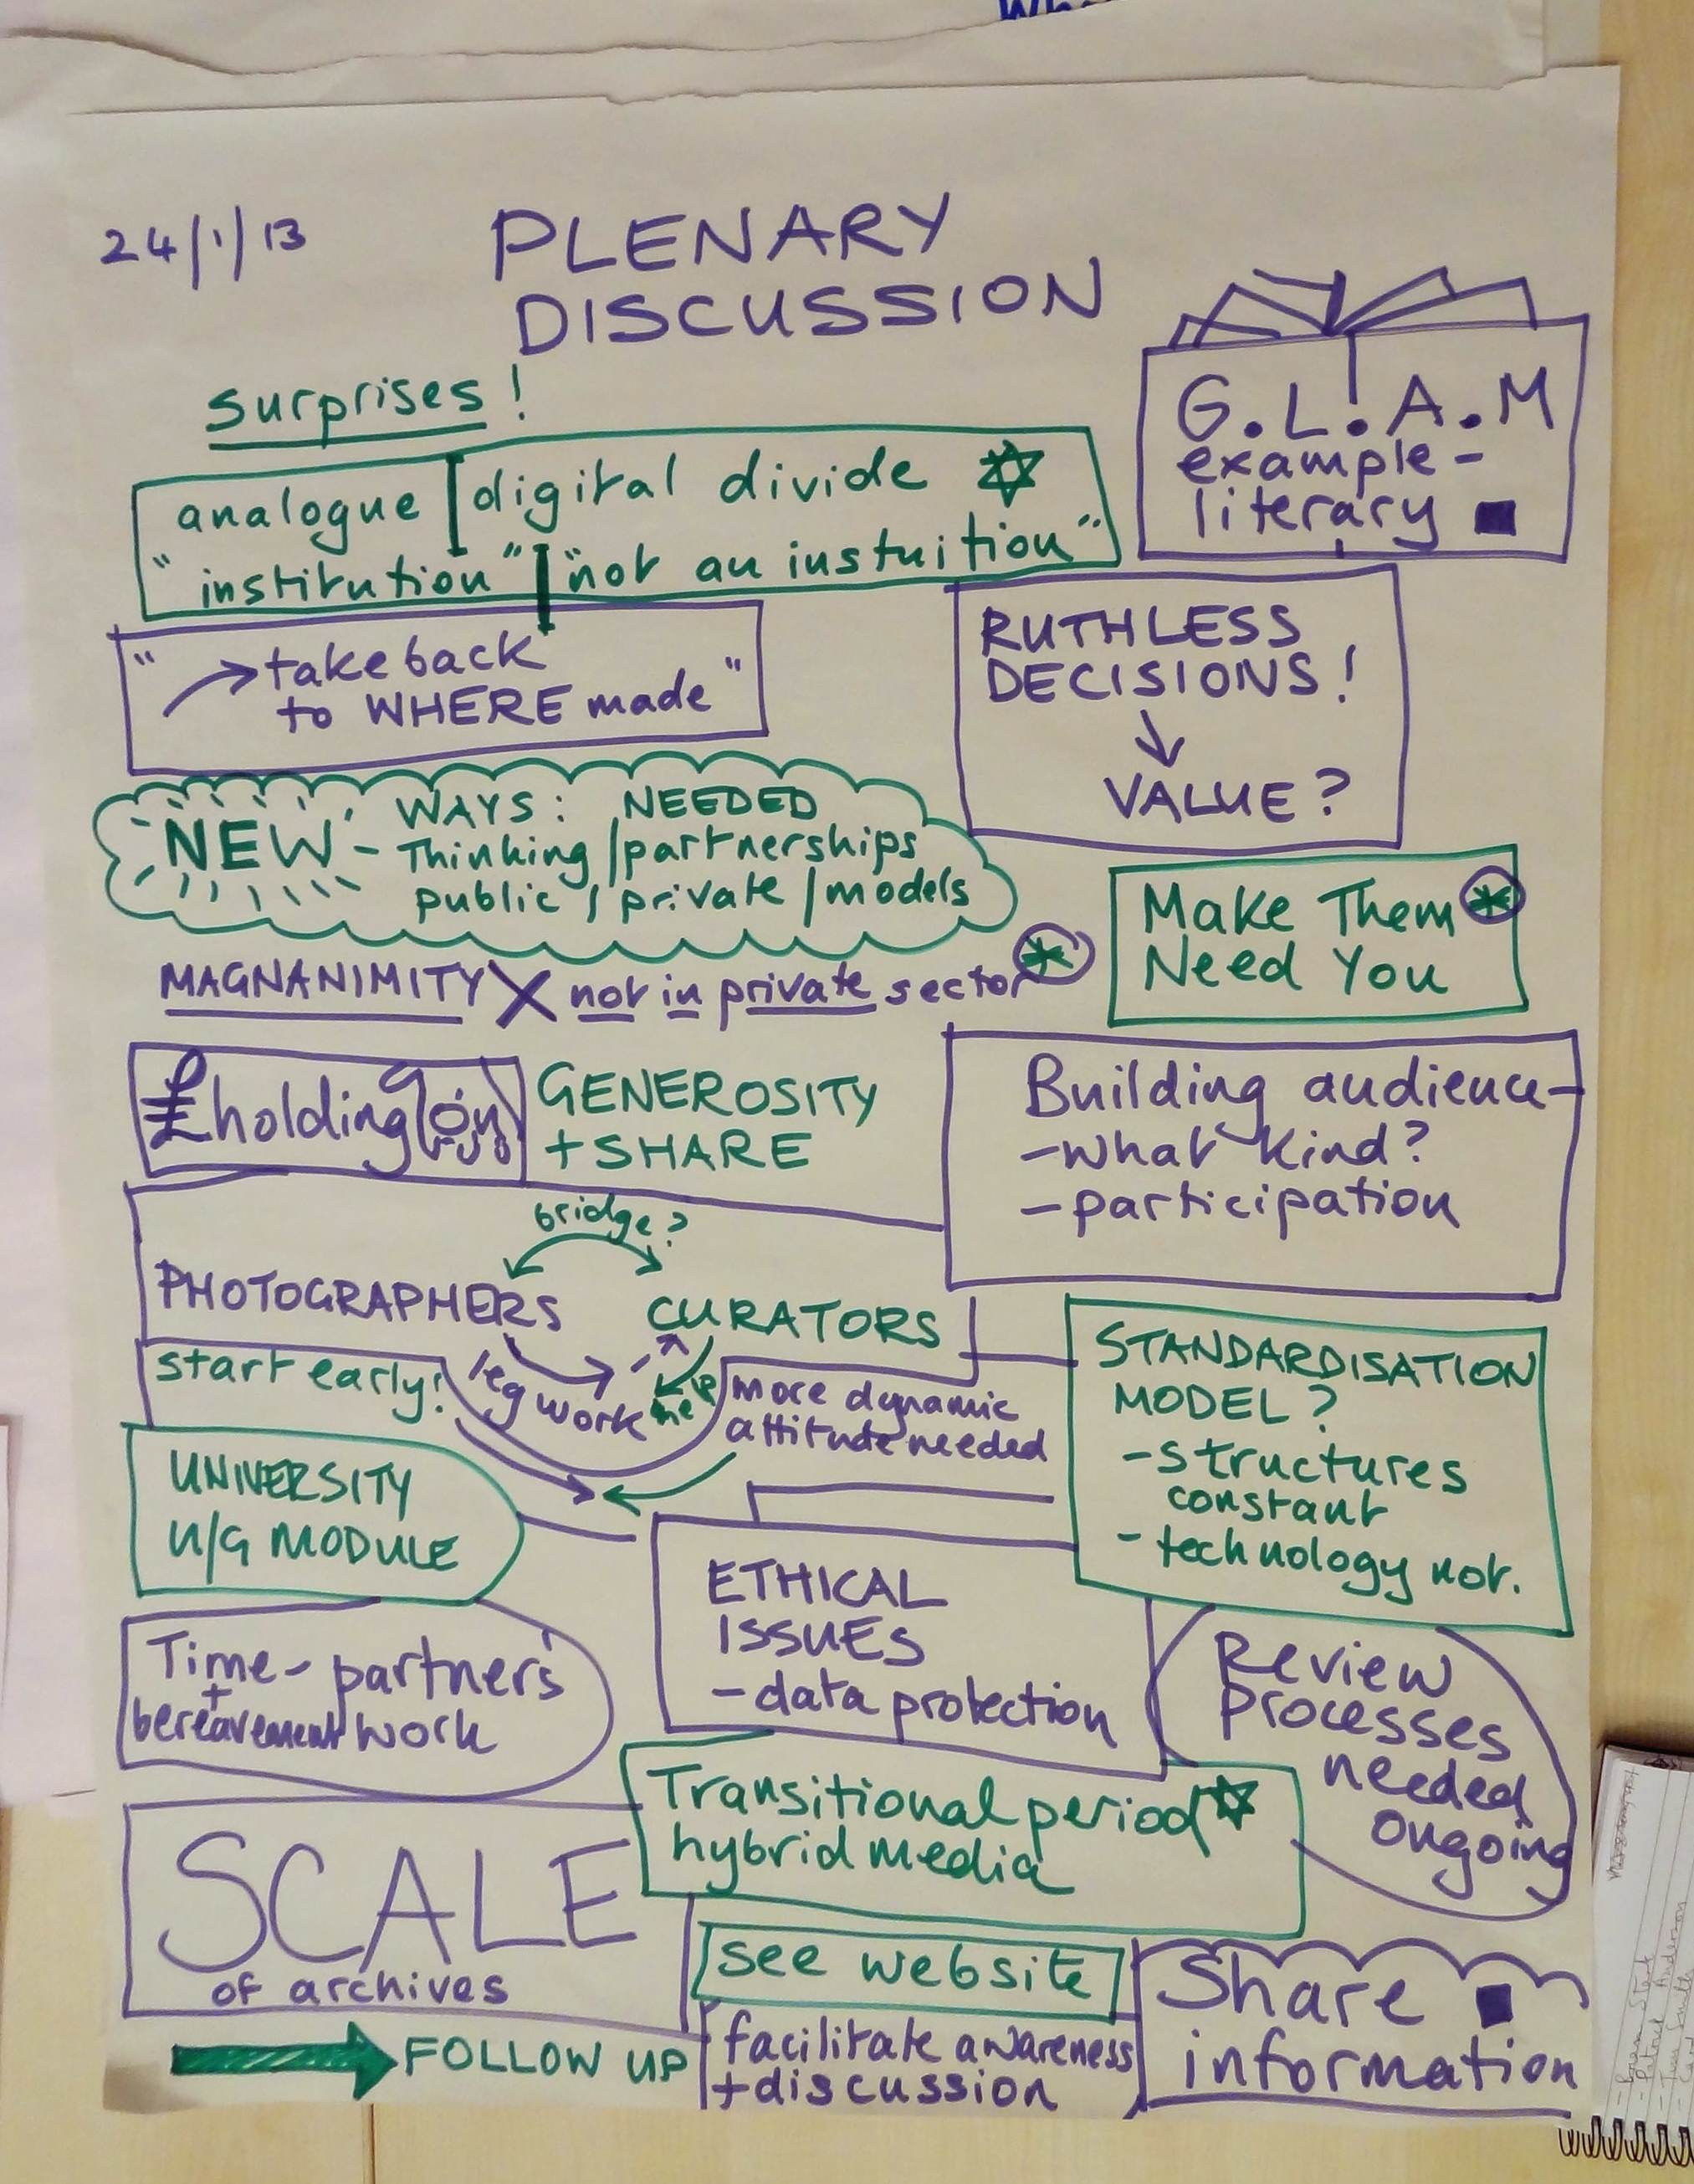 Summary of plenary discussion issues from Photographers' Legacy Project focus group